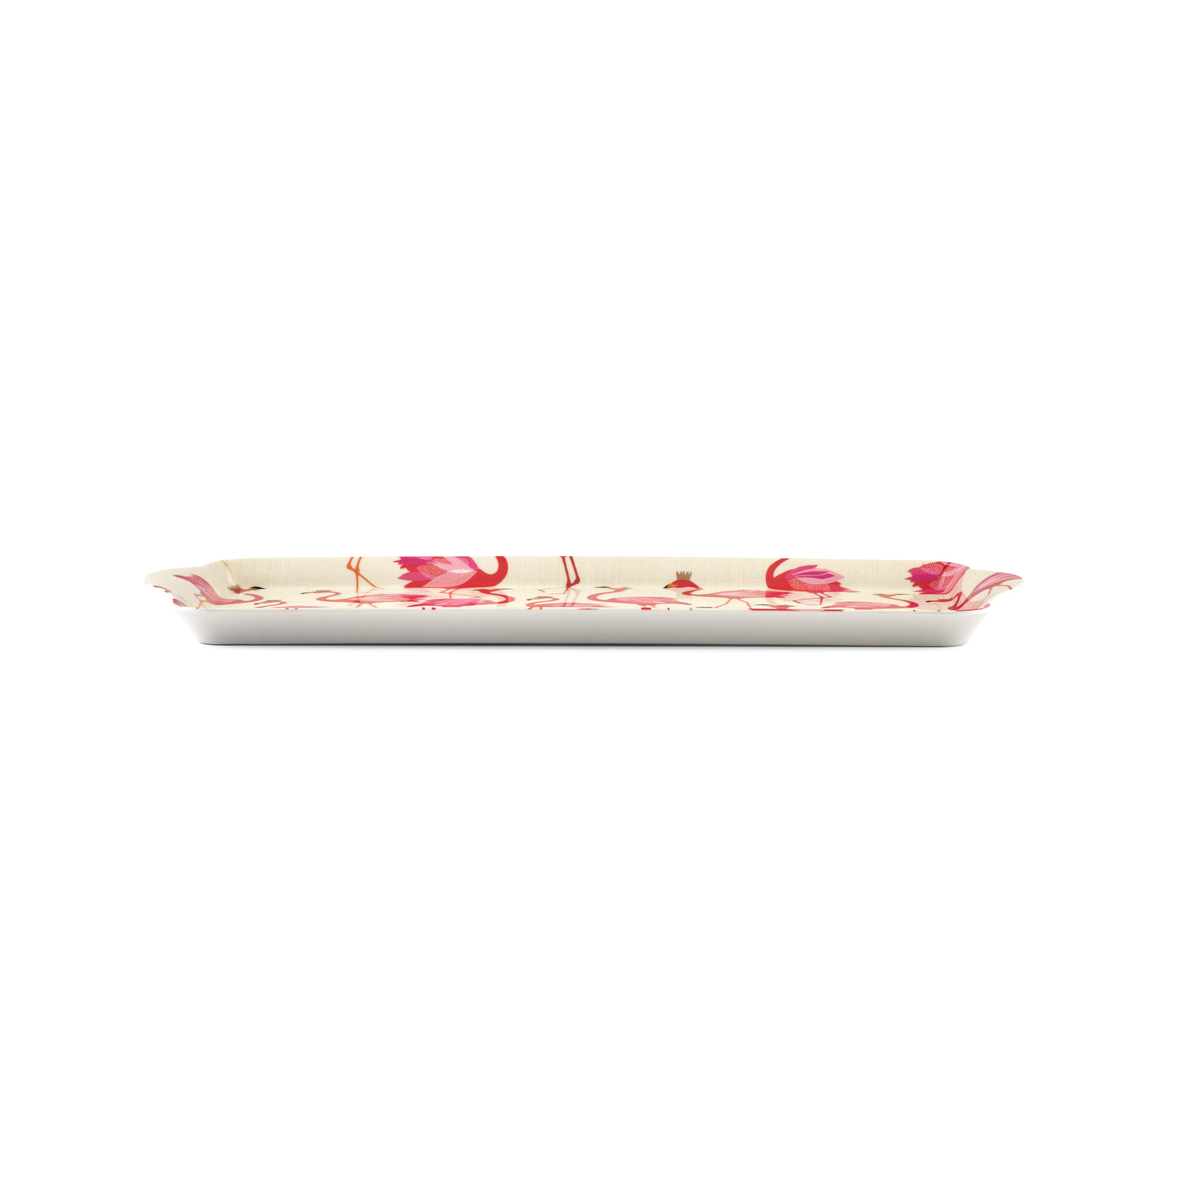 Sara Miller London for Pimpernel Flamingo  Melamine Sandwich Tray image number 2